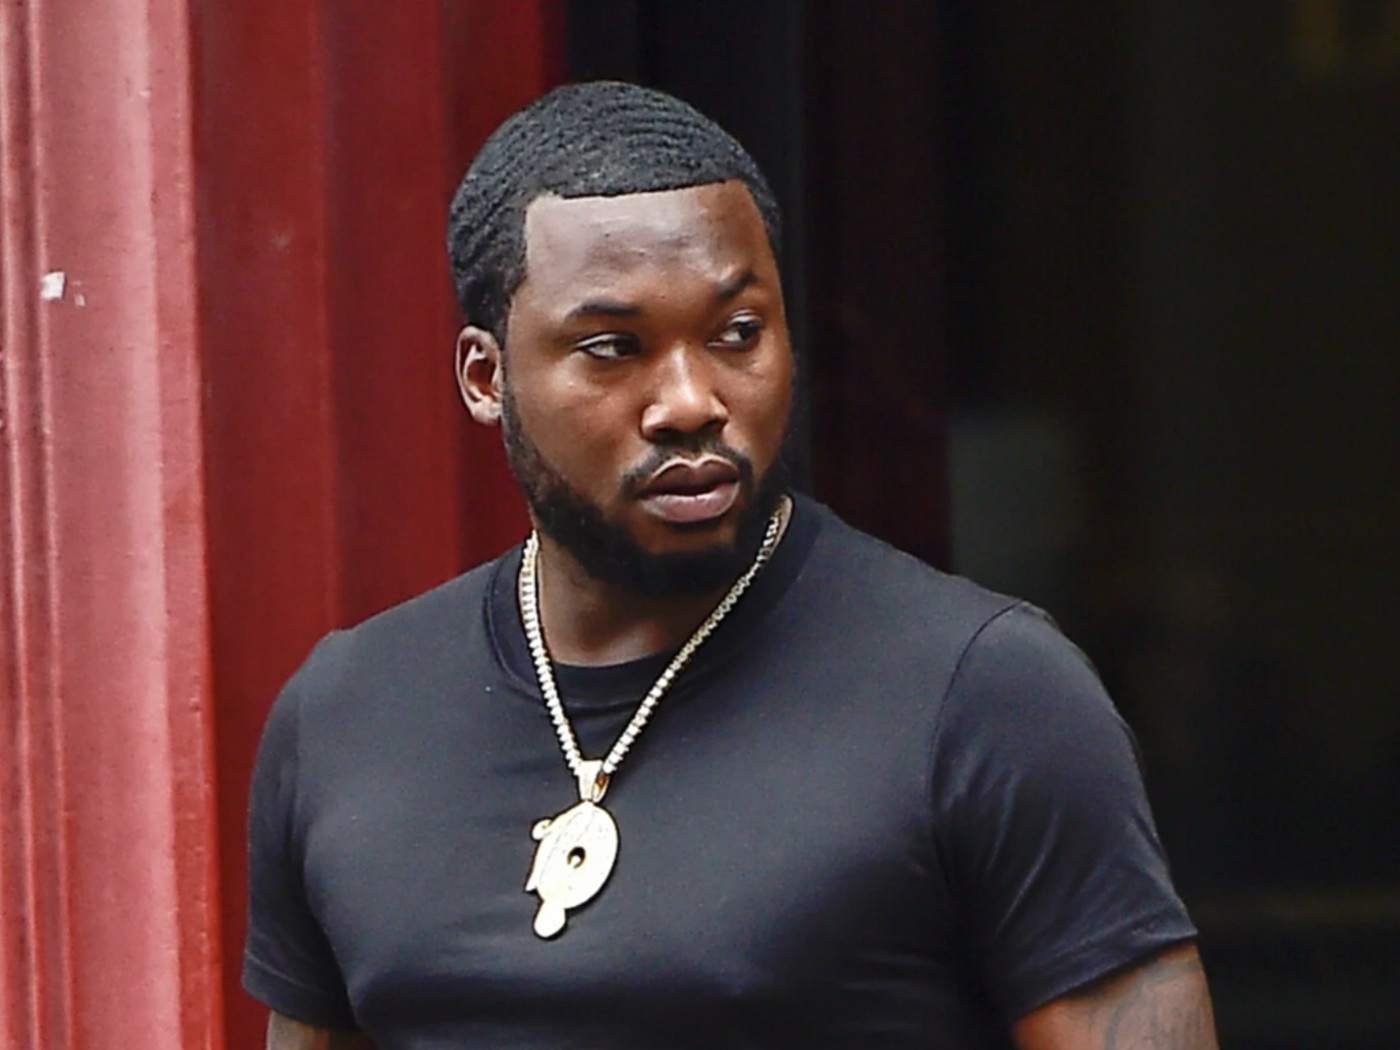 Meek Mill and Travis Scott Get Into It At A Party In The Hamptons